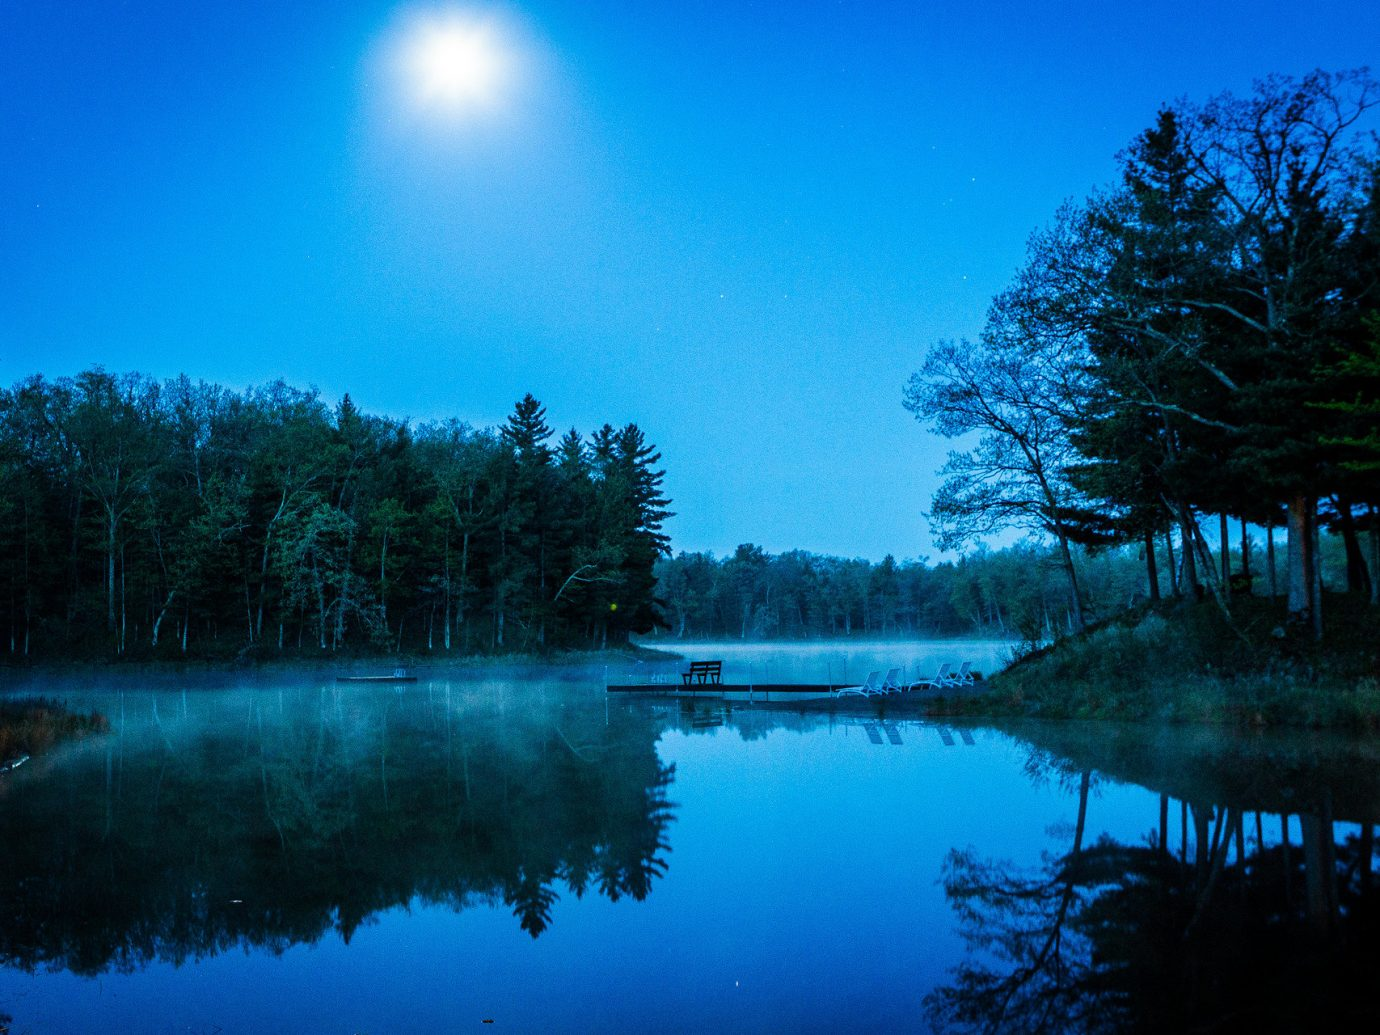 calm dusk Forest isolation Lake Nature night Outdoors reflection remote serene trees Trip Ideas woods tree outdoor water sky habitat pond atmospheric phenomenon wilderness natural environment atmosphere morning dawn moonlight cloud evening sunlight surrounded mountain sunrise computer wallpaper mist day wooded